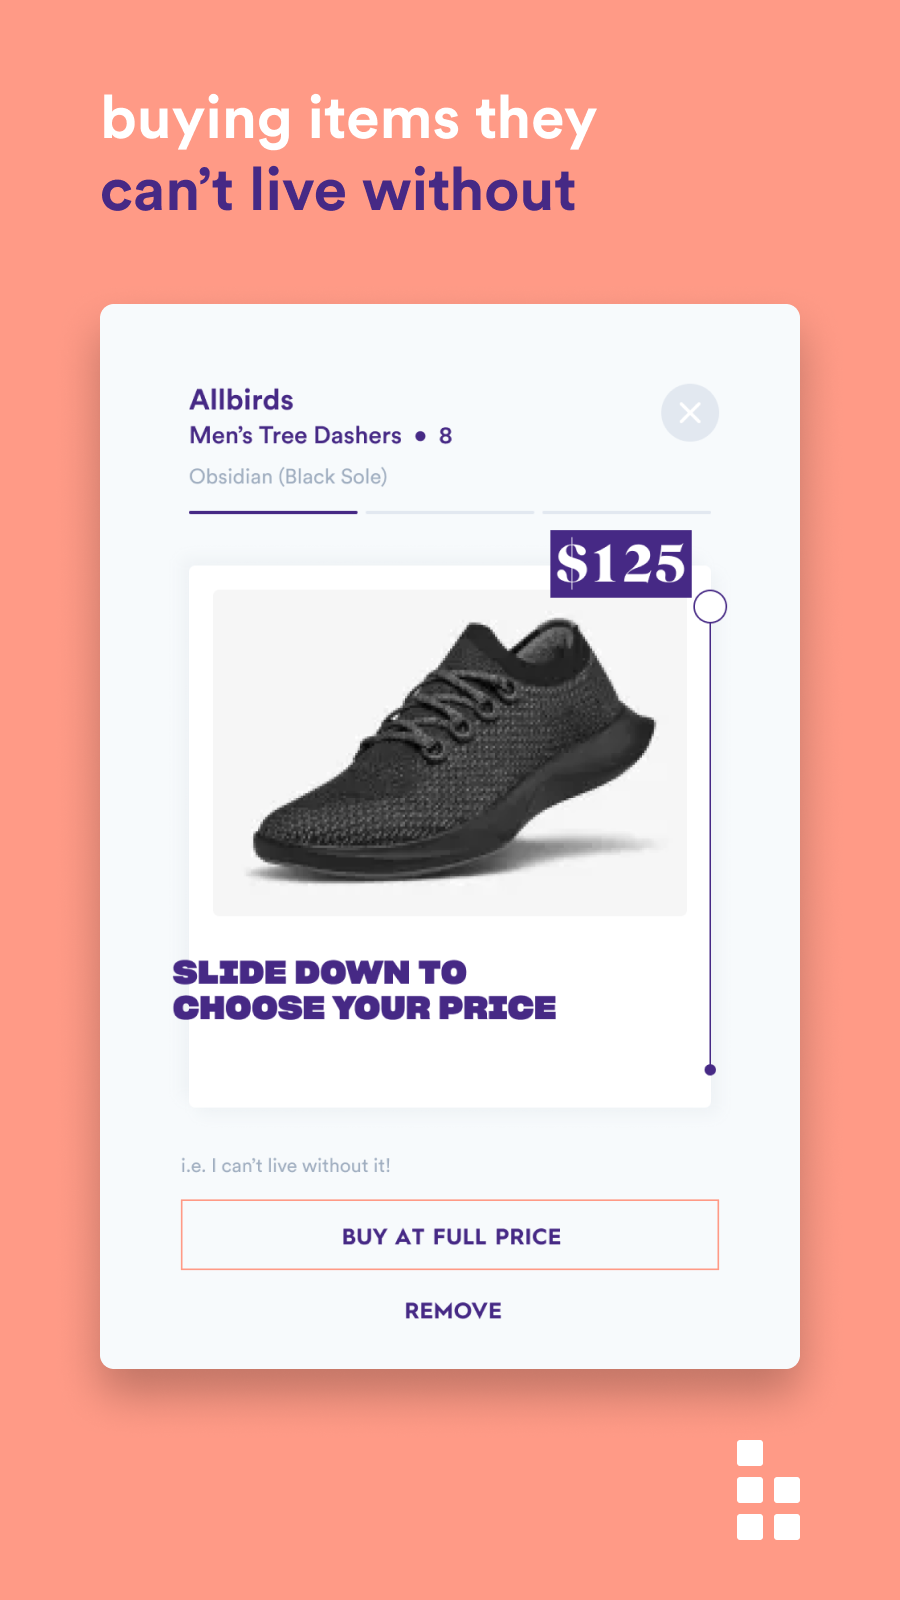 Customers can checkout items they want today at full price